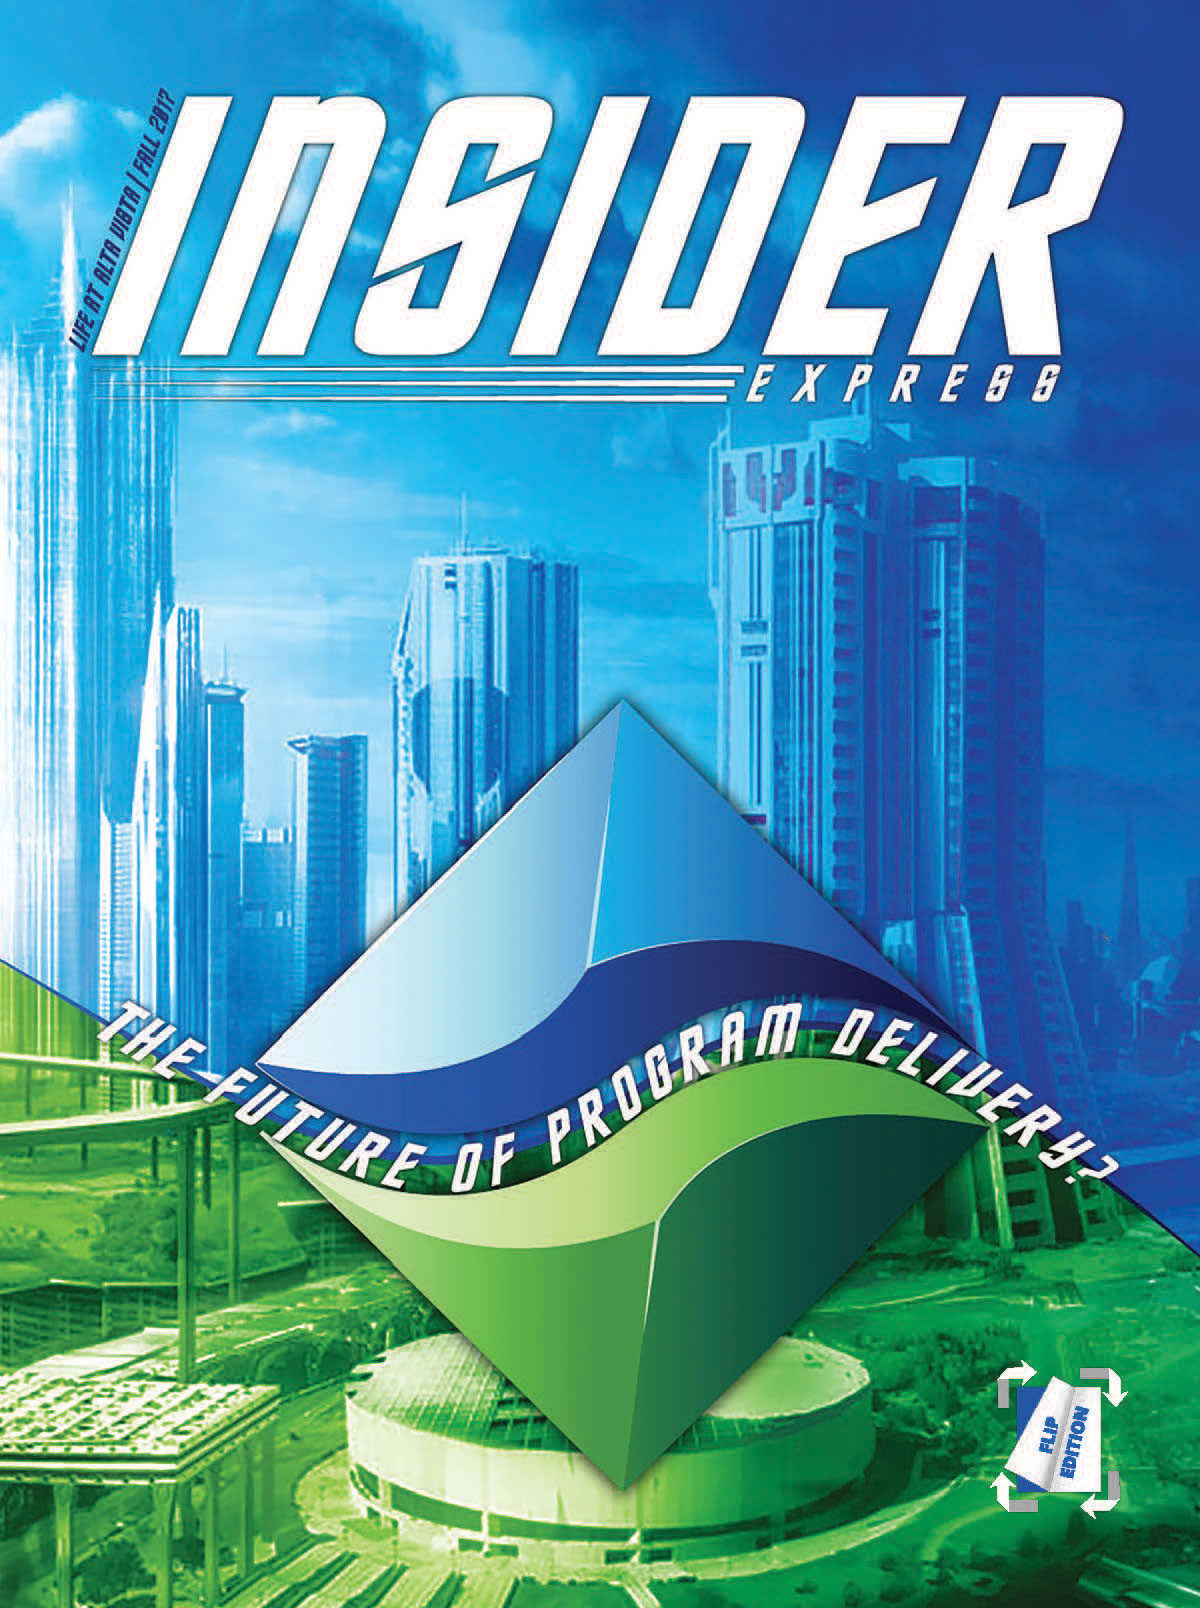 Insider Fall 2017 edition: Future of Program Delivery (Click to view this issue)